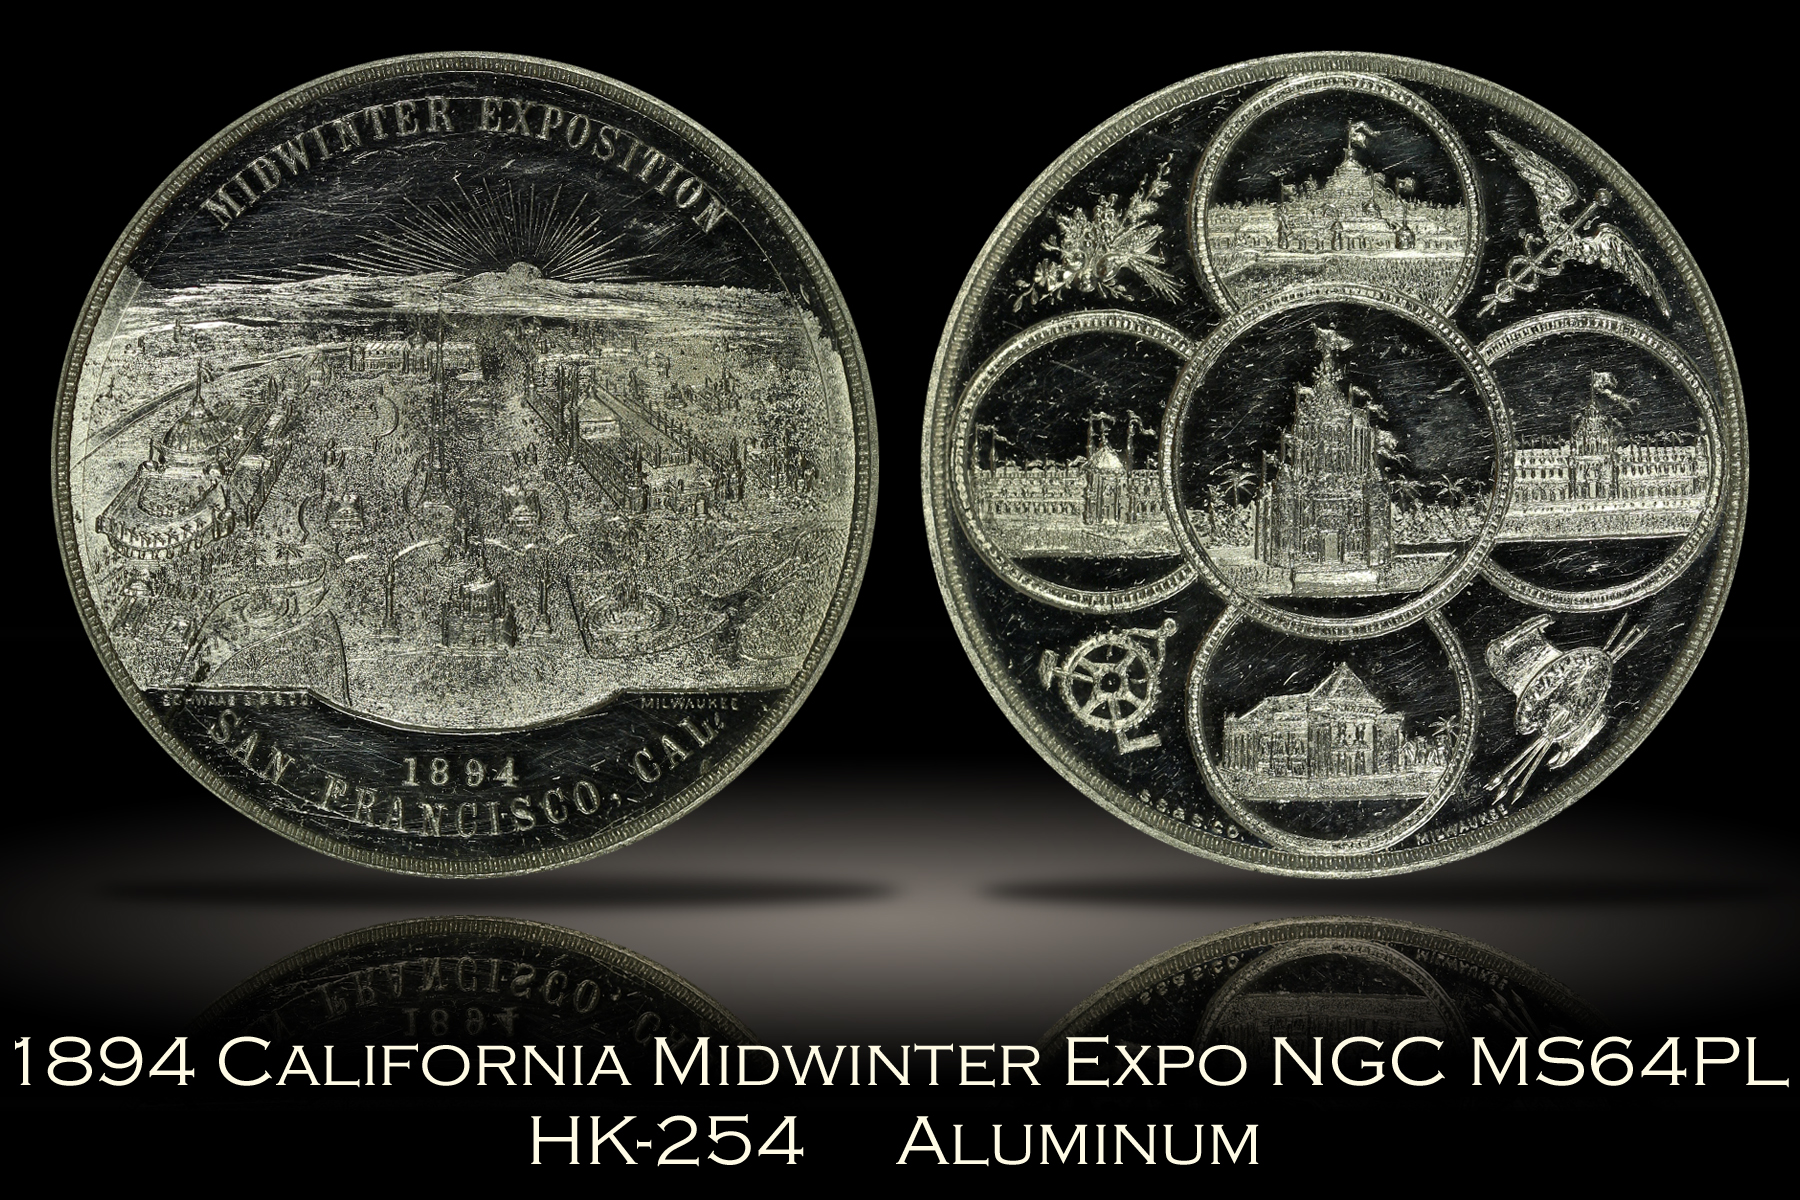 1894 California Midwinter Exposition View Medal HK-254 NGC MS64PL